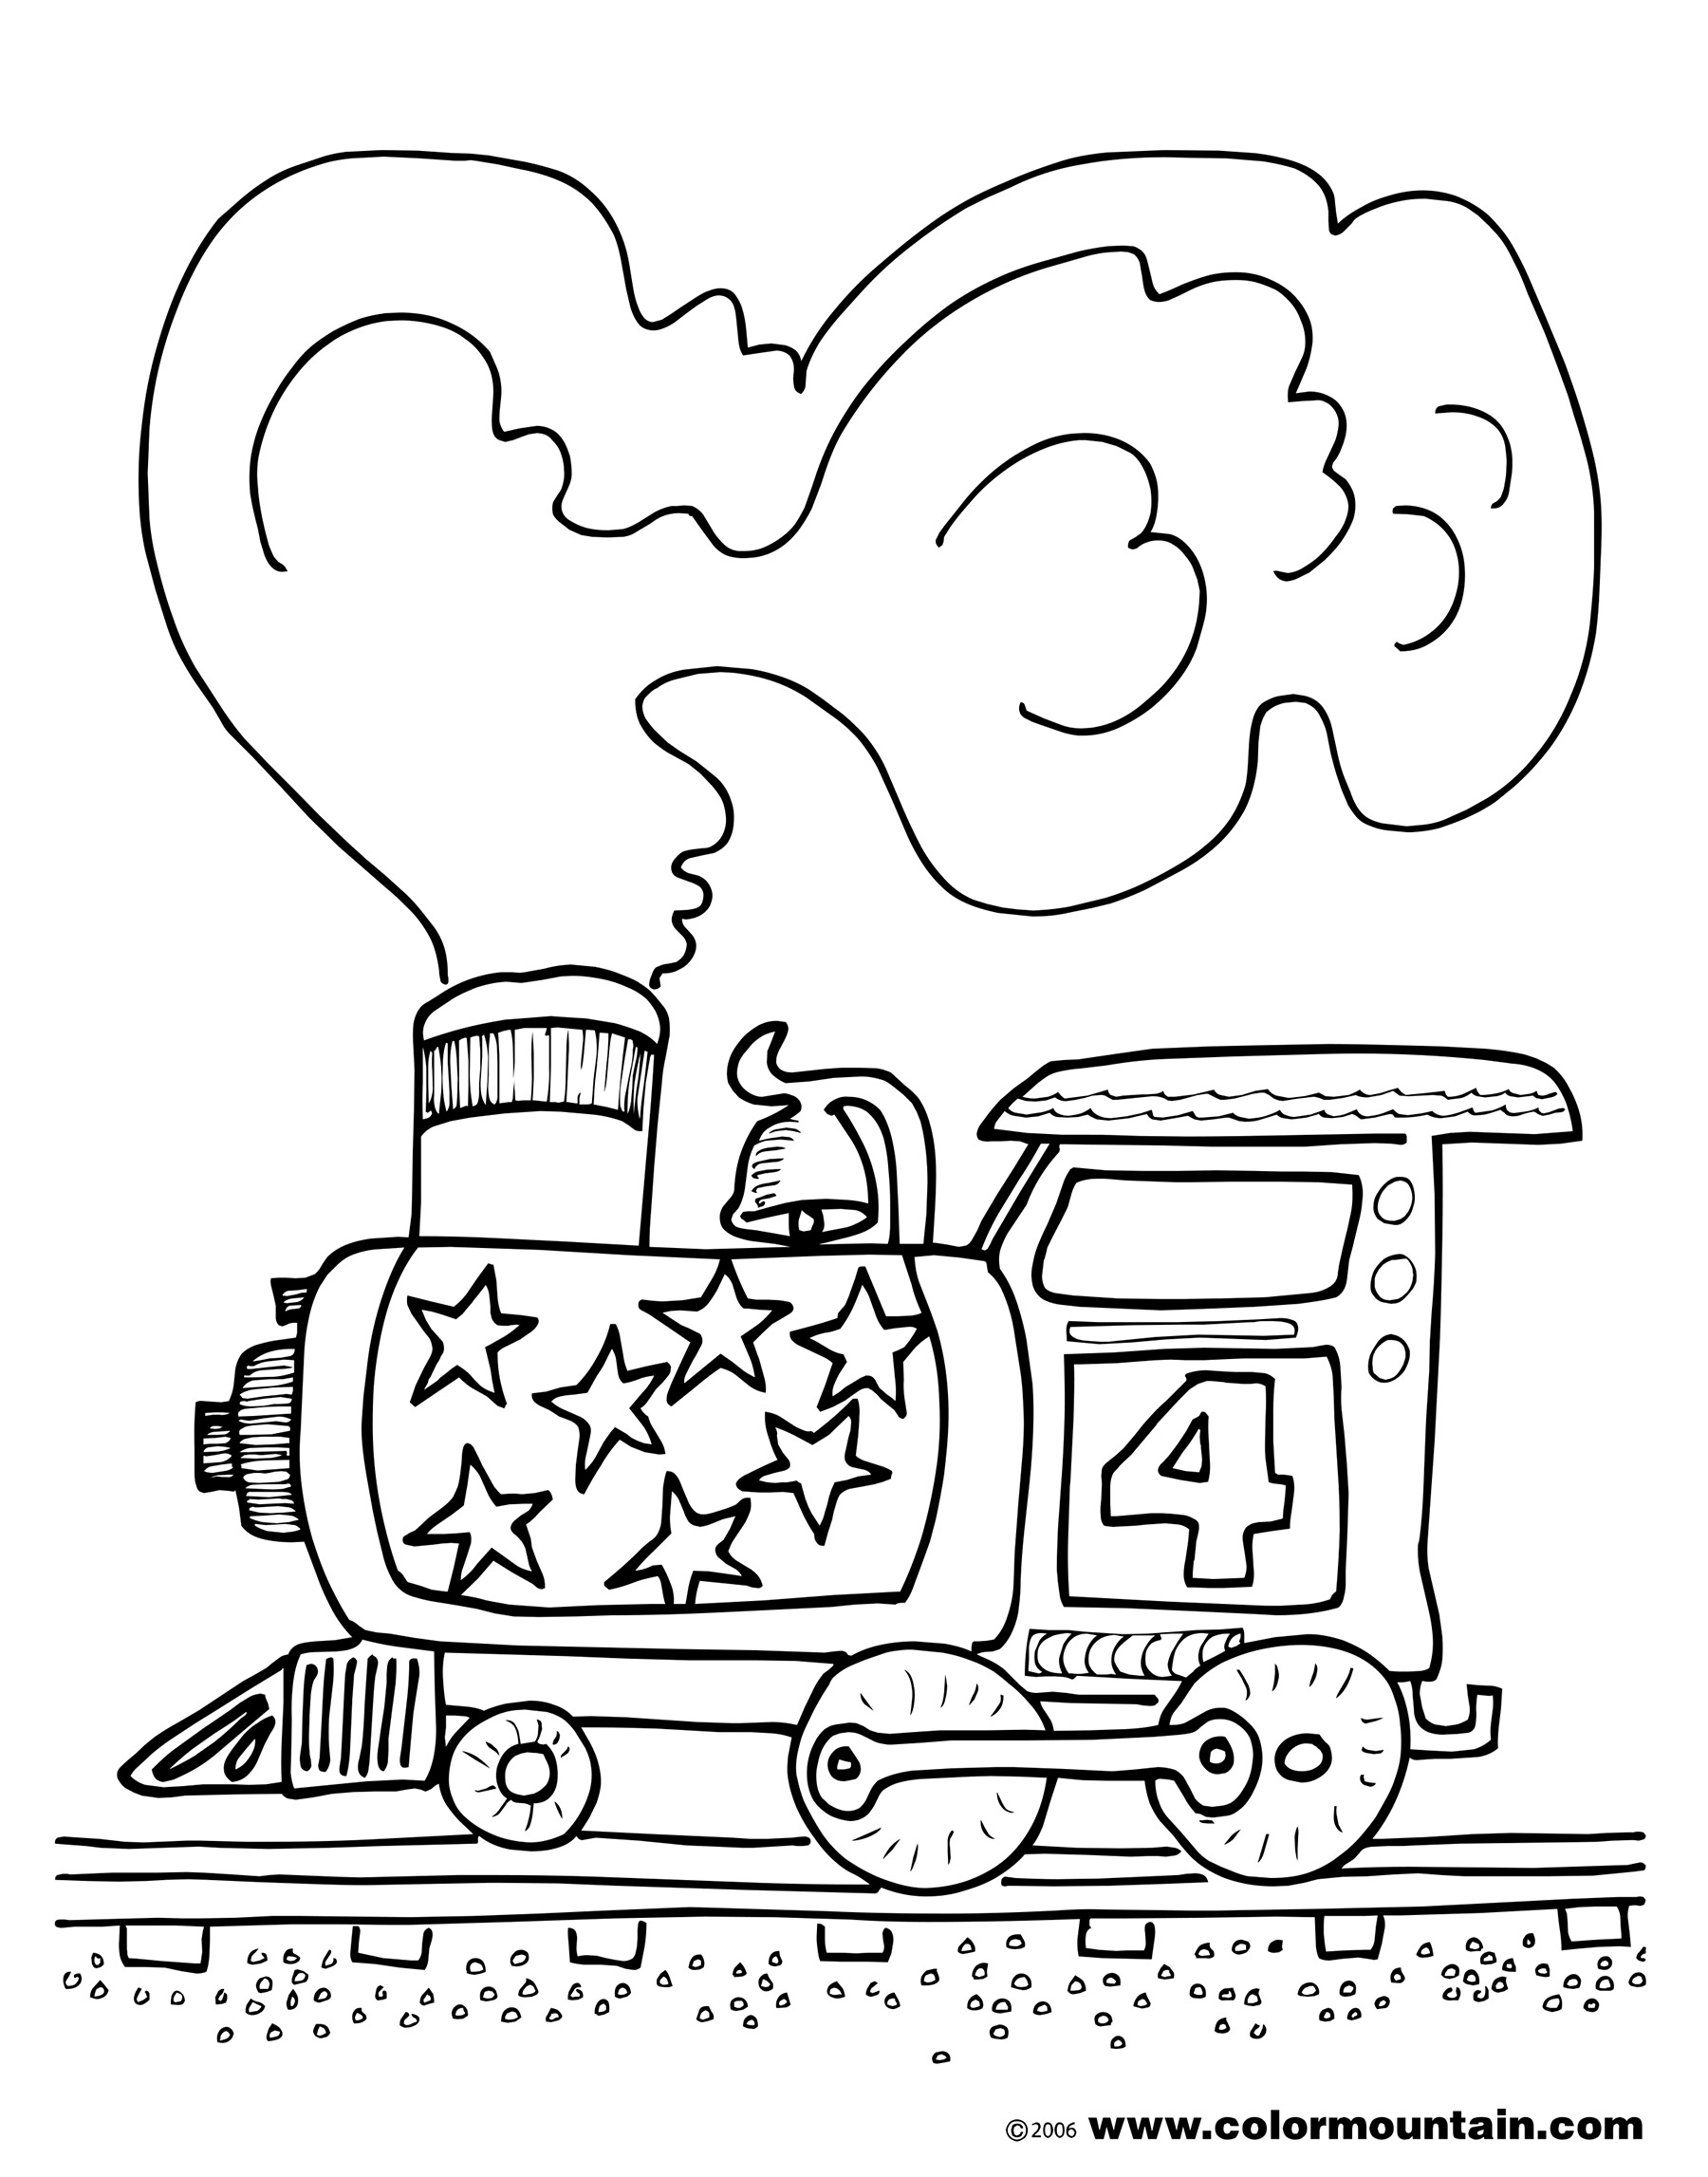 steam train coloring pages Collection-steam engine train coloring page 9-k